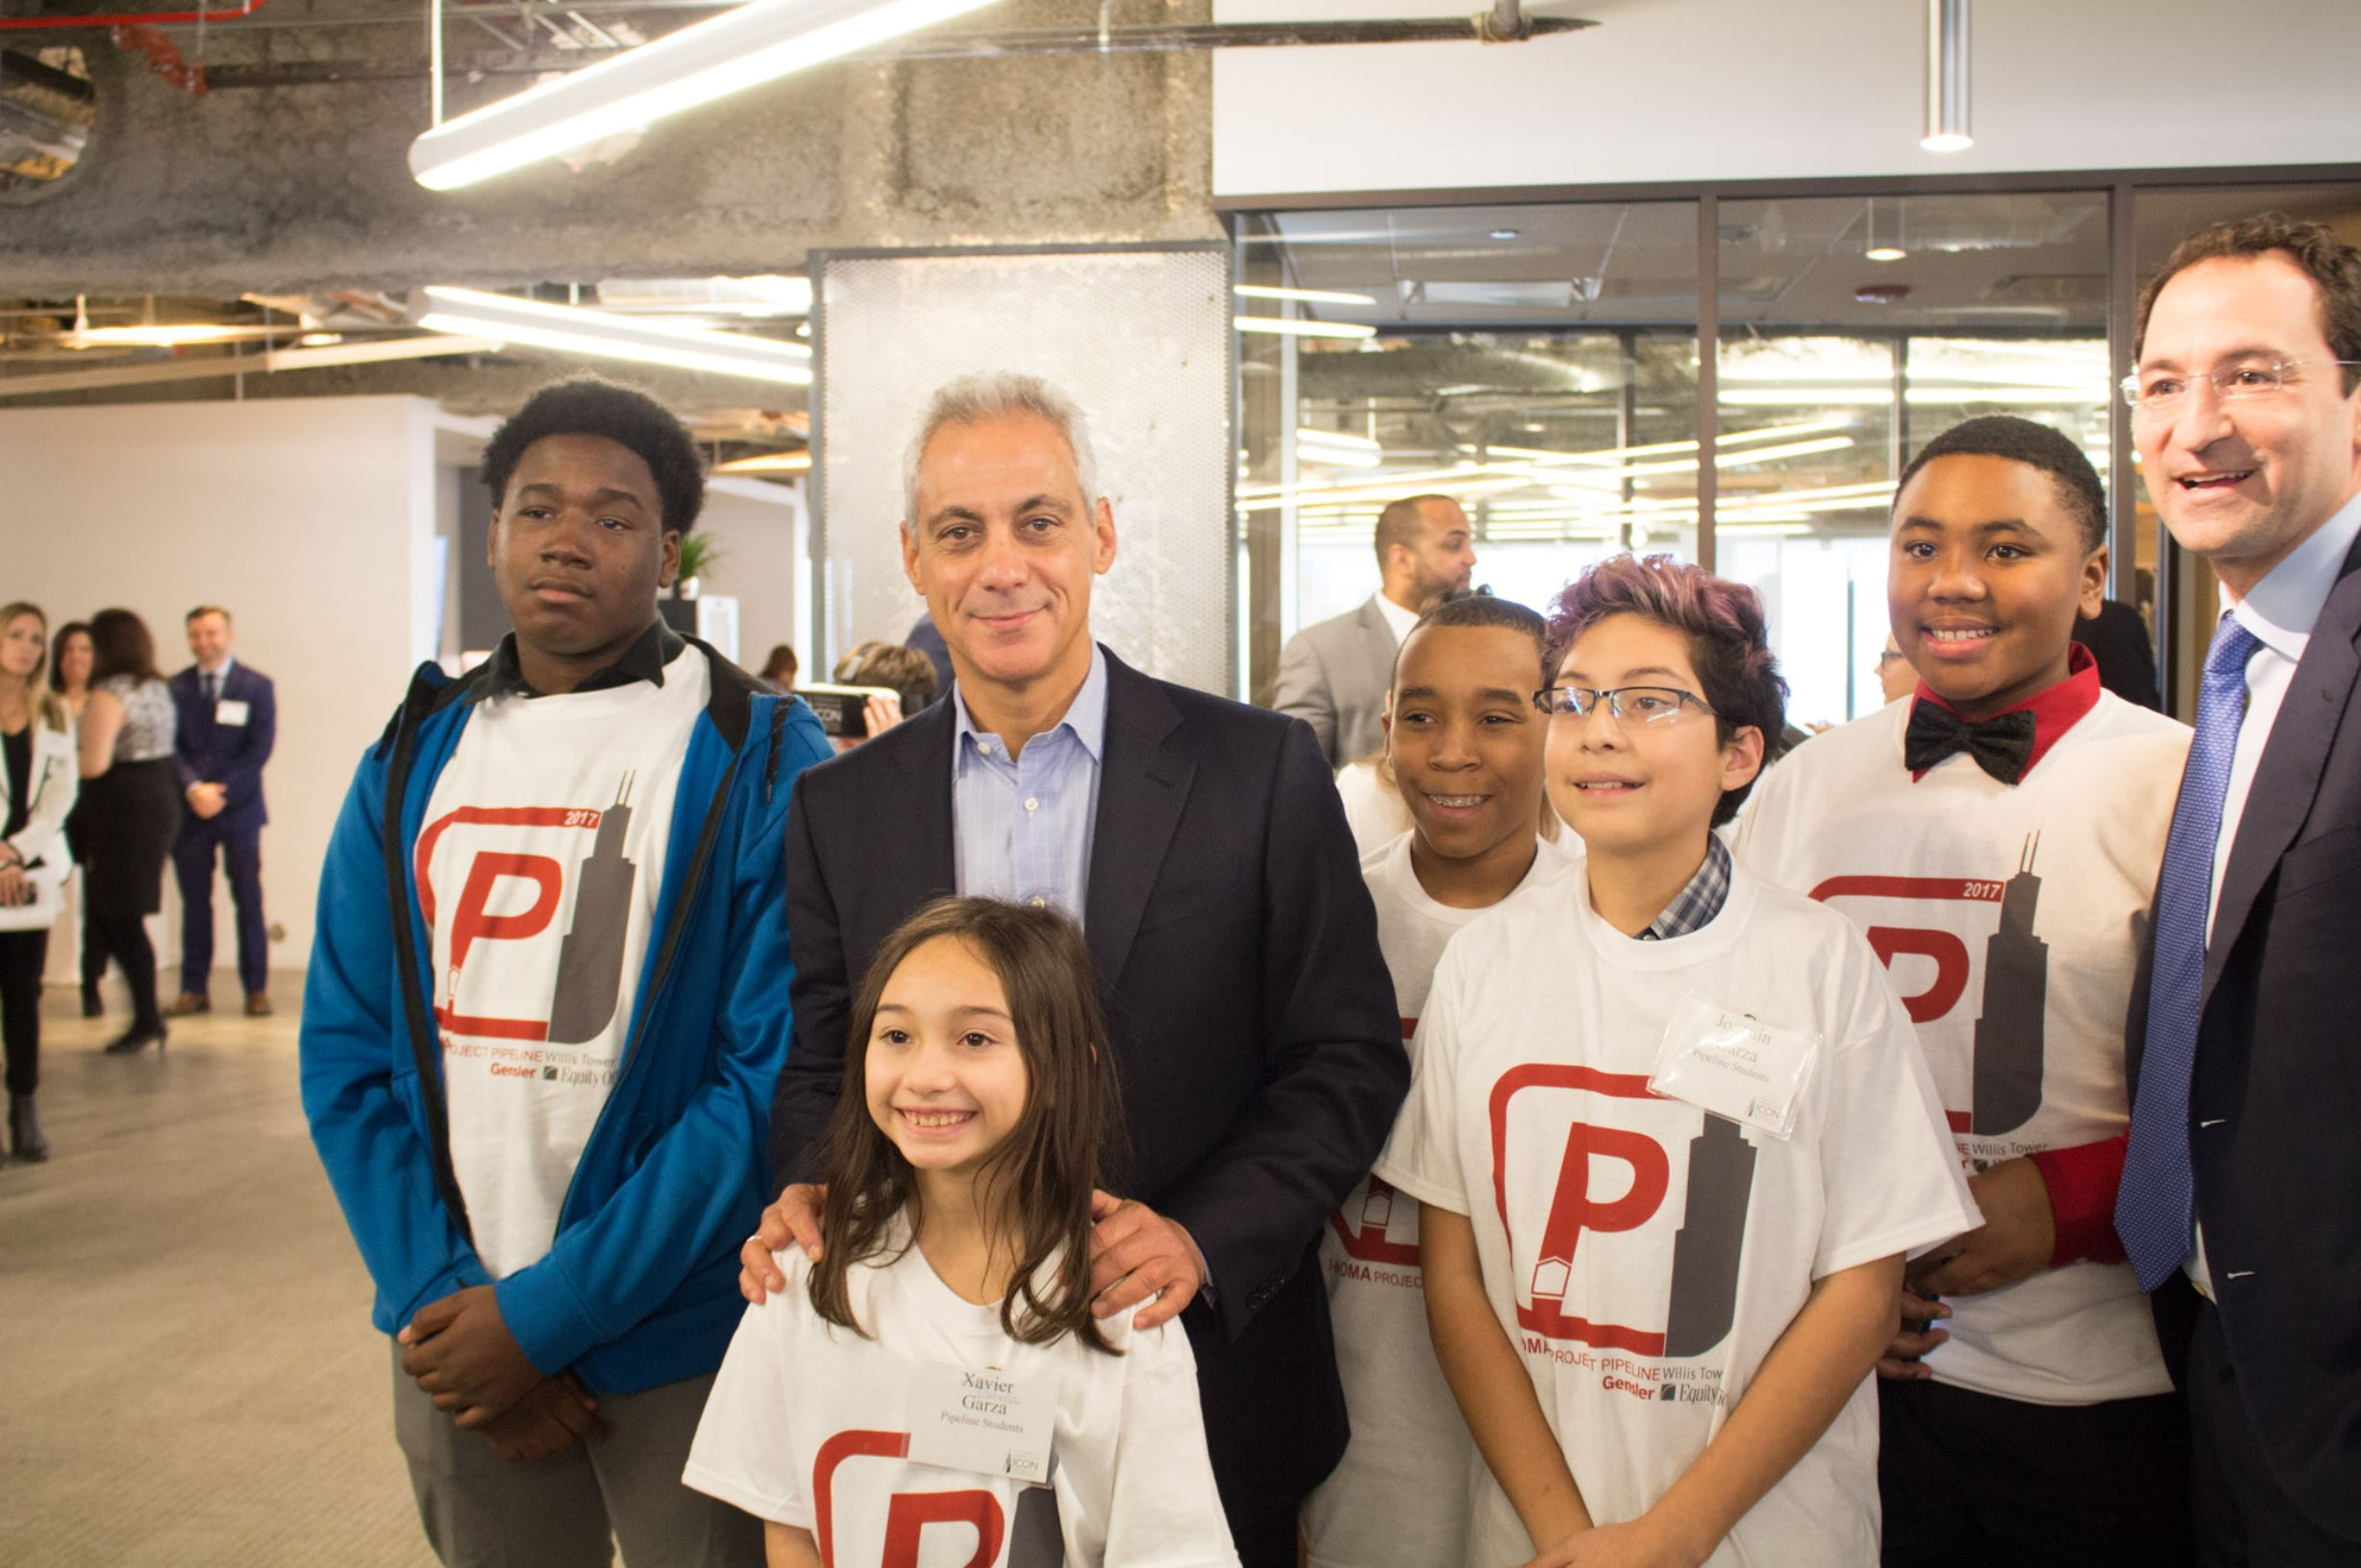 2017 - [Chicago Mayor Rahm Emanuel with Project Pipeline students] Equity Office & Blackstone Willis Tour Event